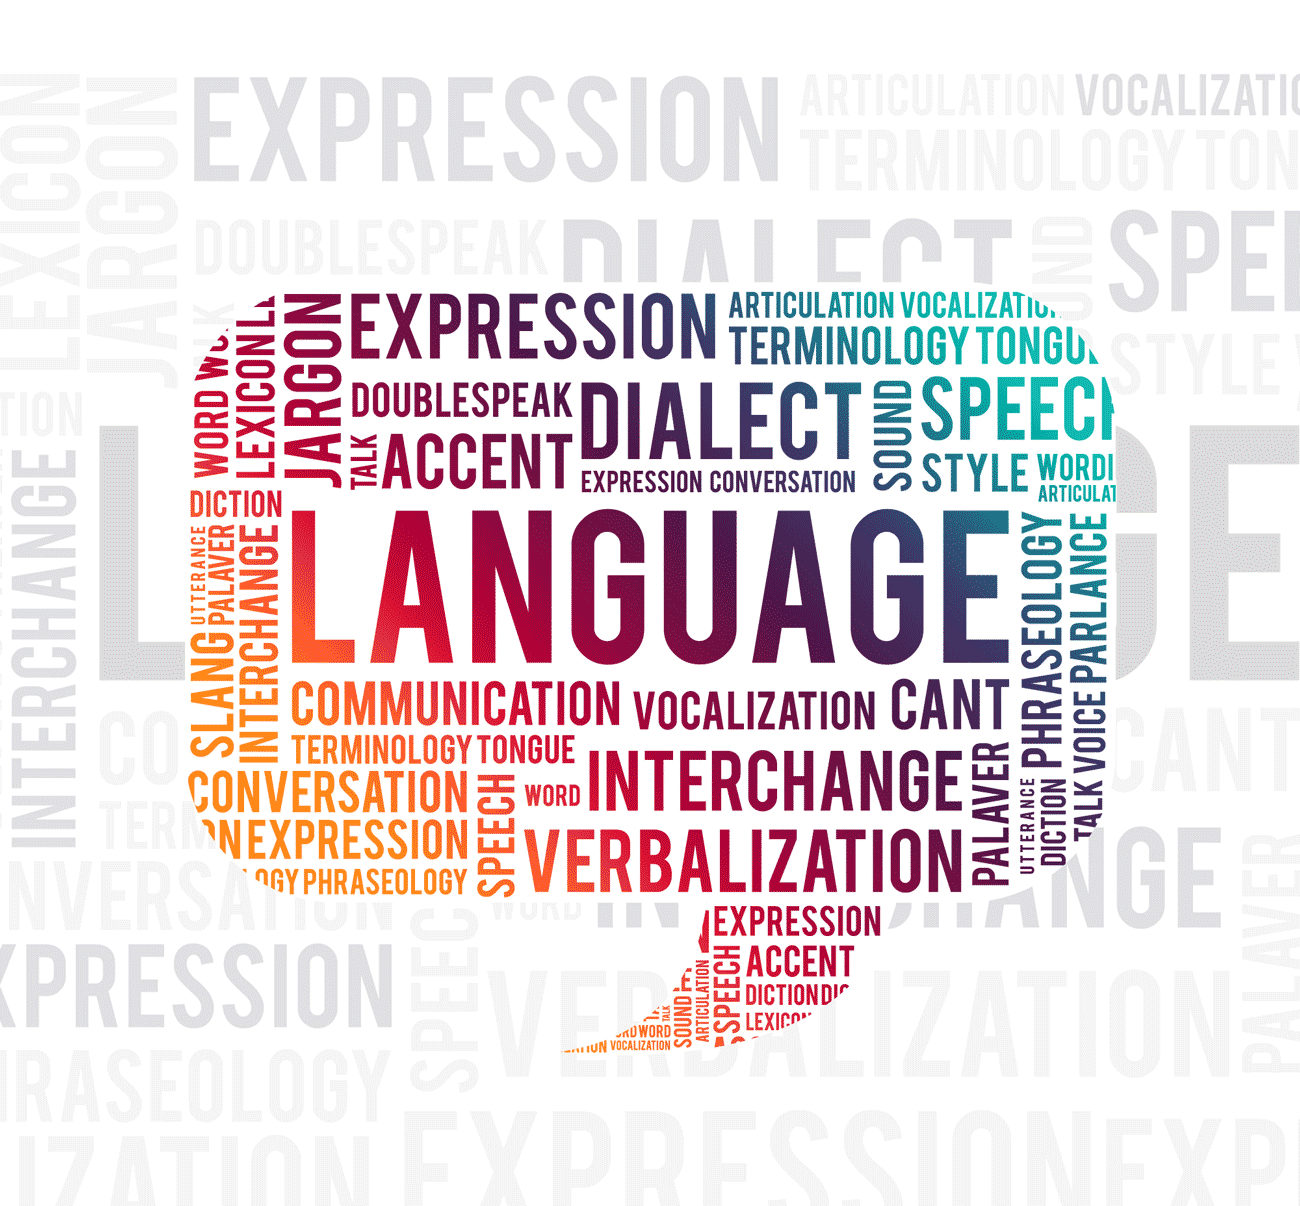 Can-AI-Stop-the-Erosion-of-7,000-Human-Languages-DataEthics4All-AI-DIET-Magazine-Vol1